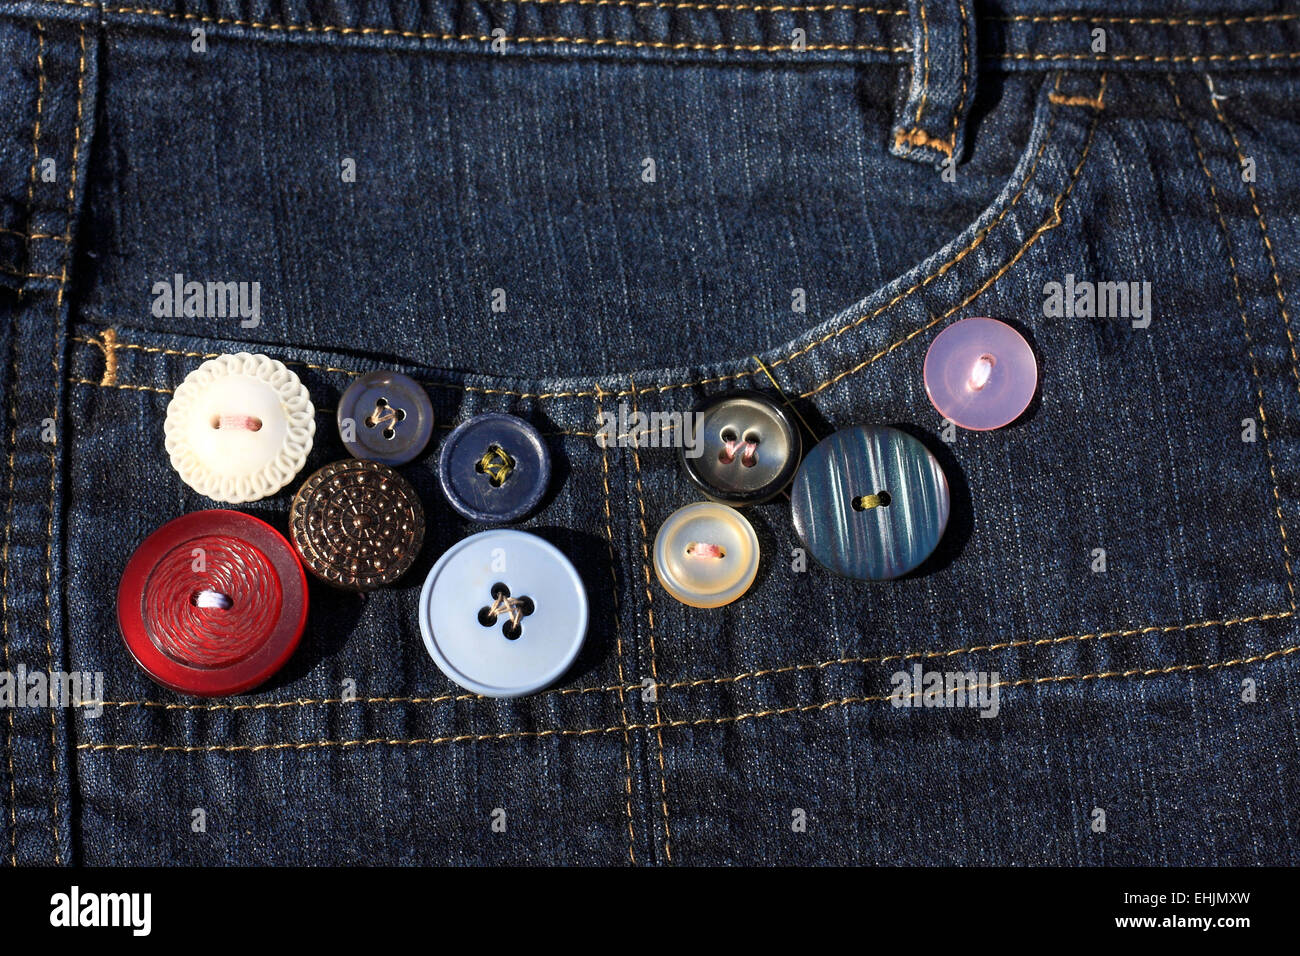 Diverse buttons on the jeans - Stock Image